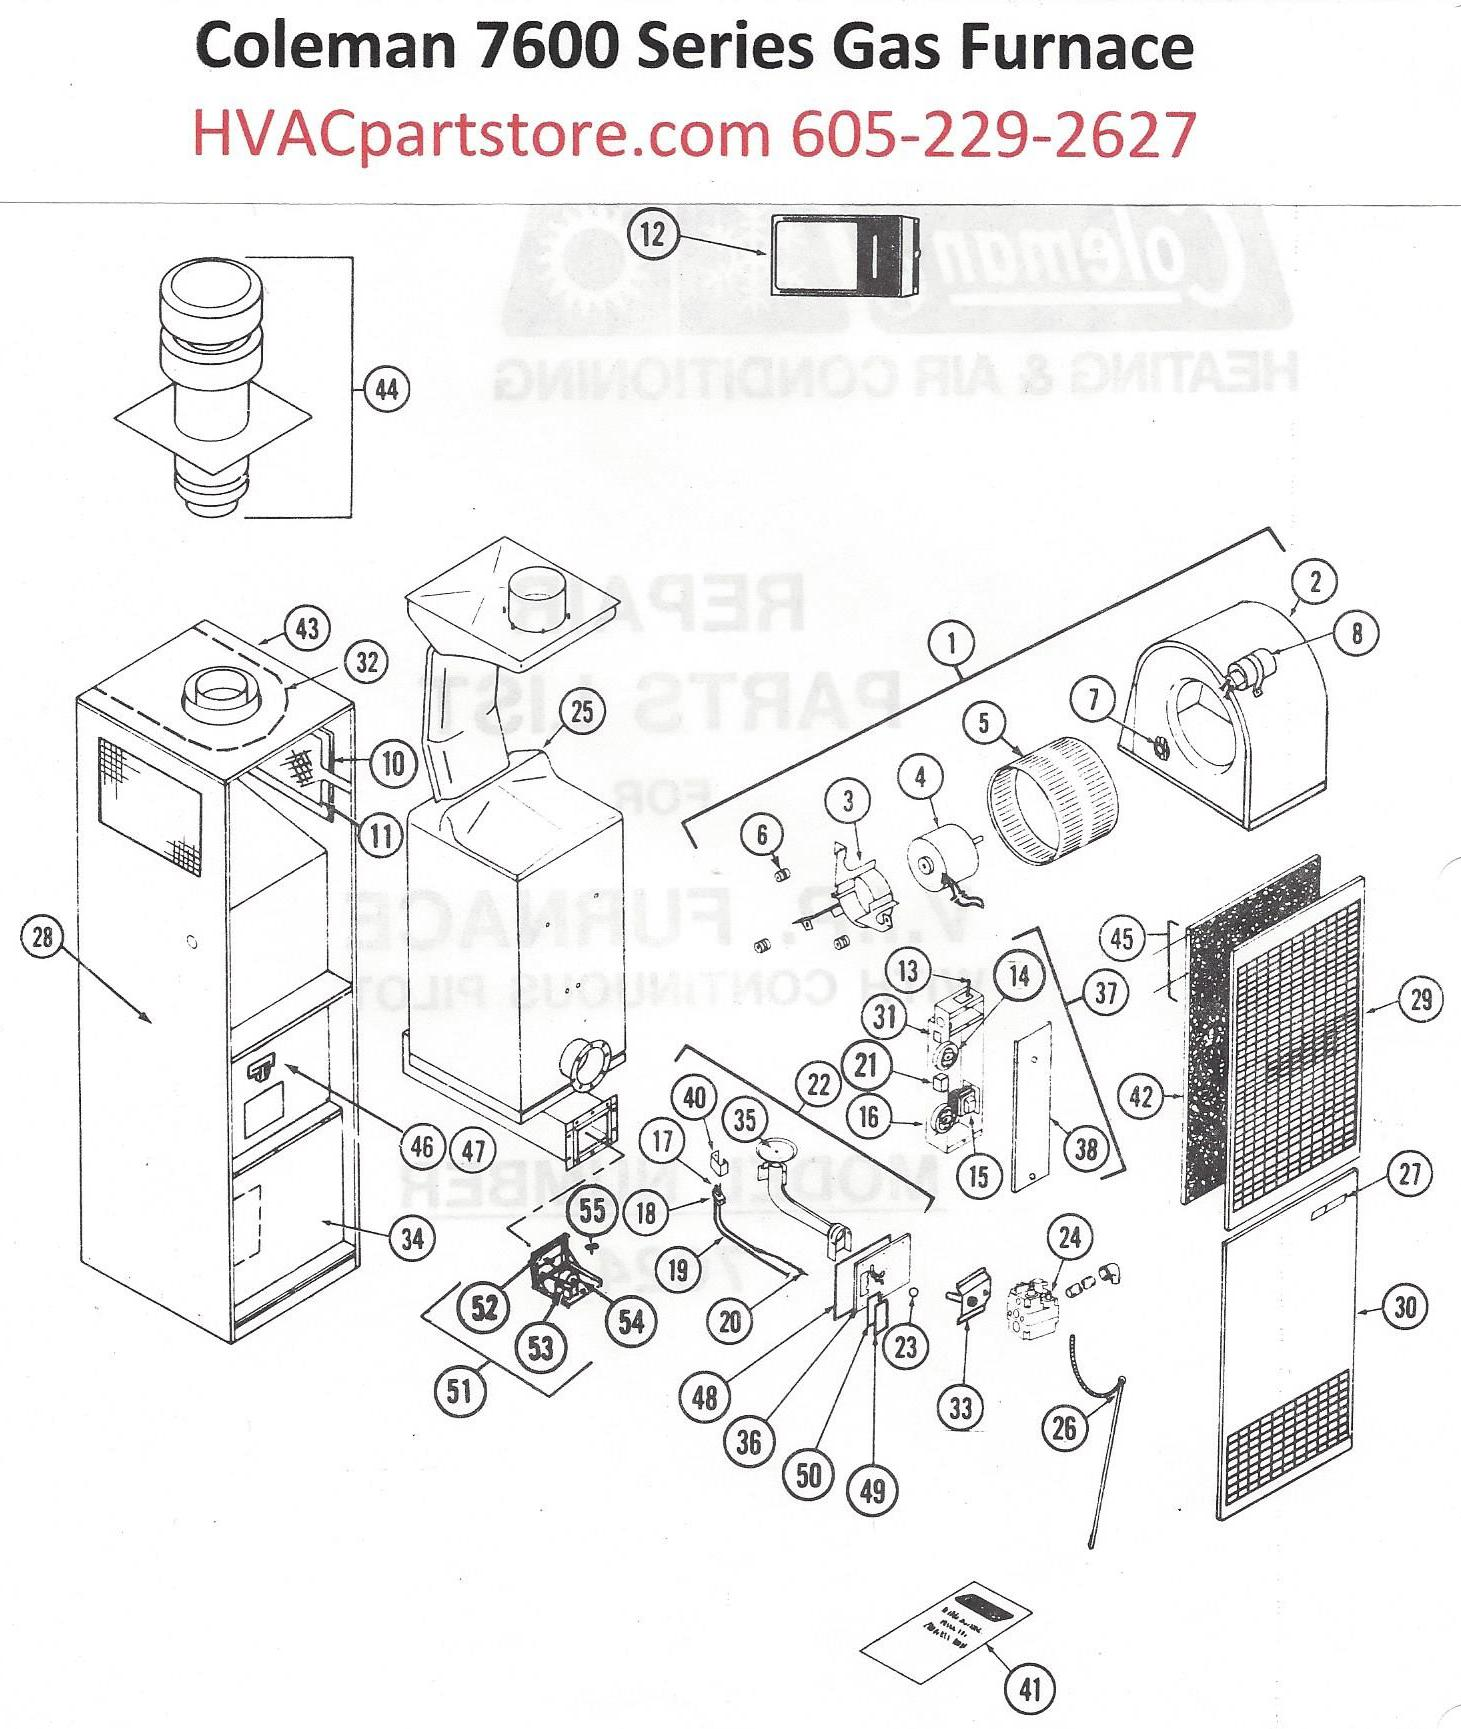 Coleman Wiring Diagram 7600 Series Great Installation Of Manufactured Home Furnace 7624 856 Gas Parts Hvacpartstore Rh Myshopify Com